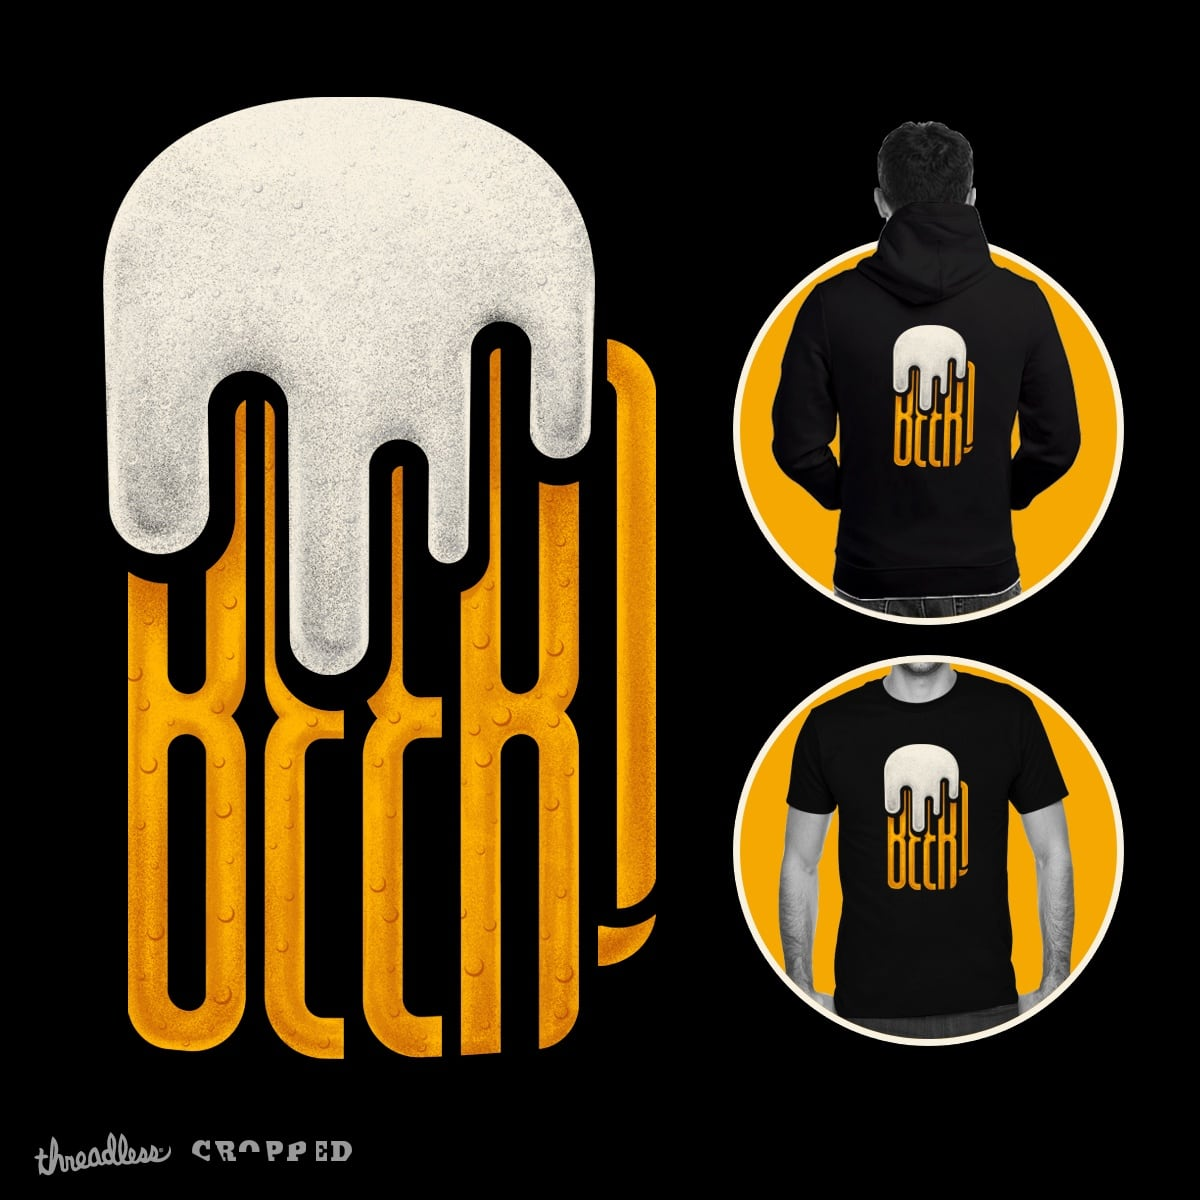 BEER! by Cnatch on Threadless